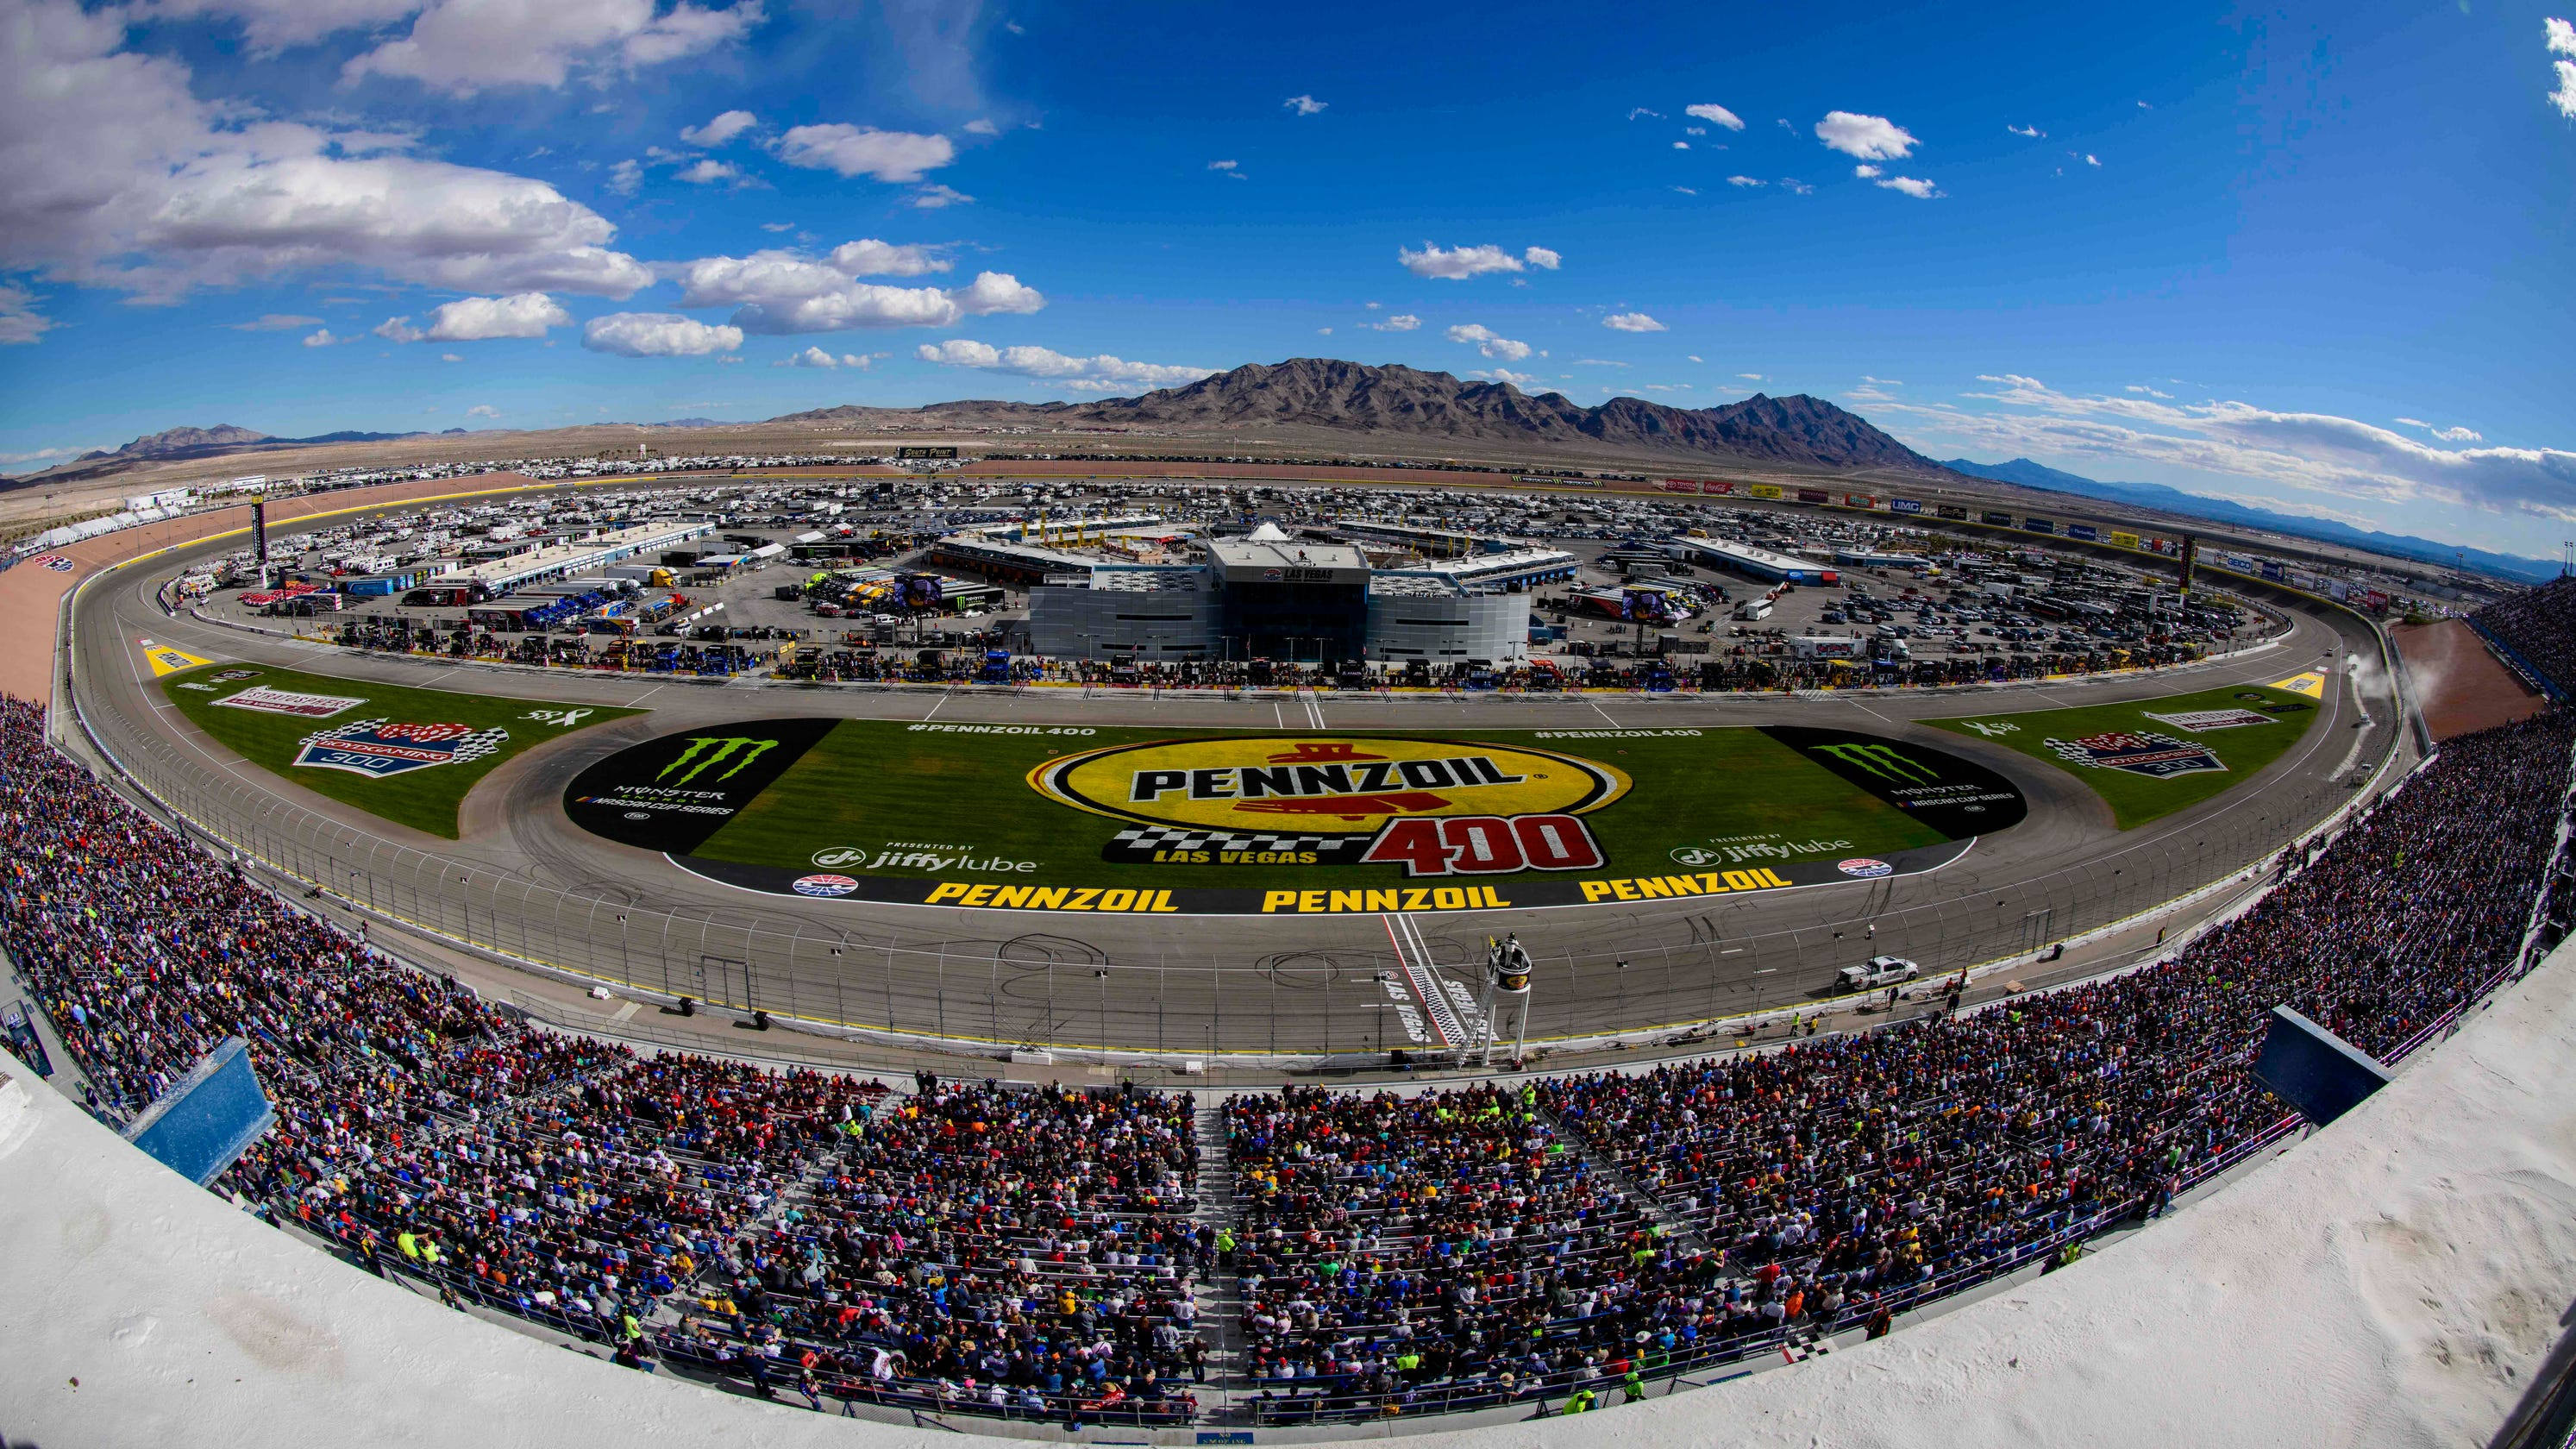 NASCAR Las Vegas 2019: Schedule, lineup, TV and weather information for Pennzoil 400